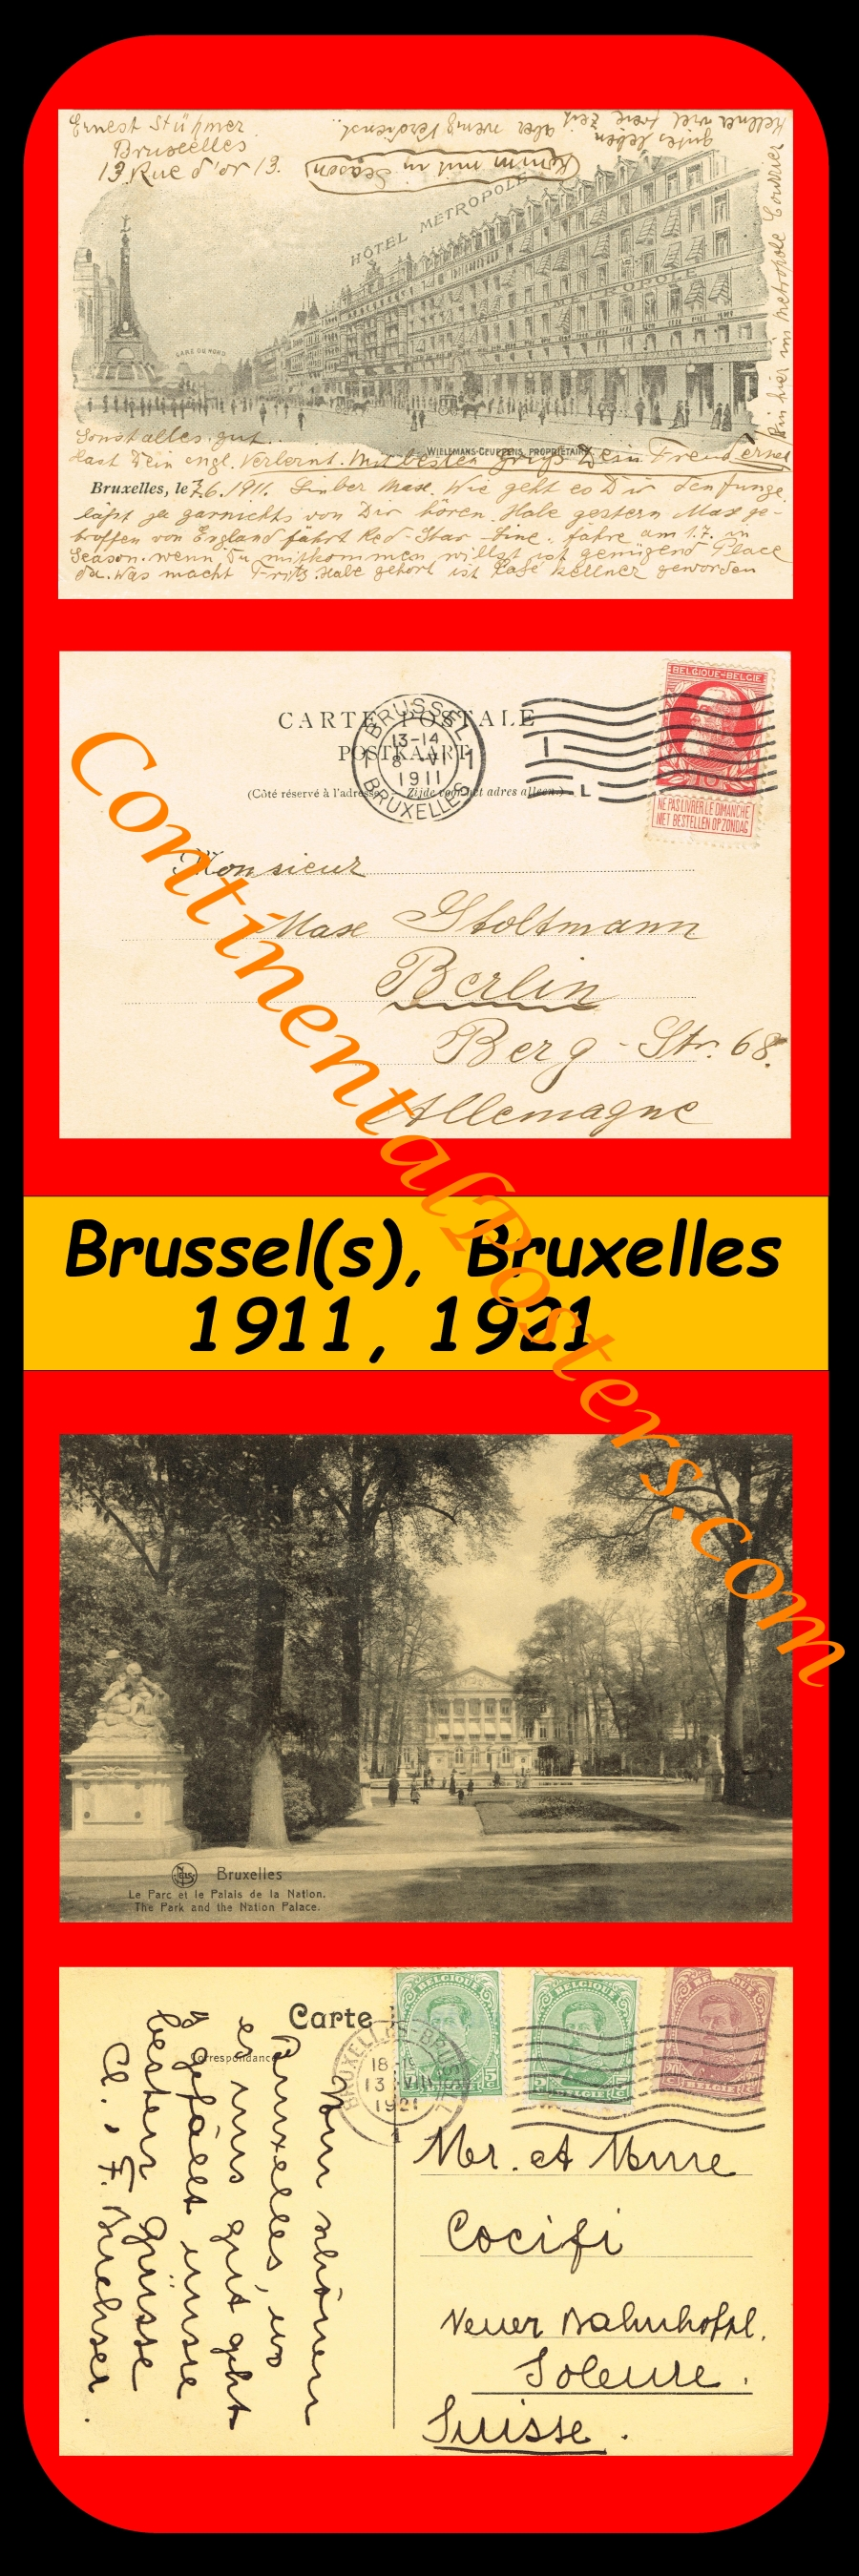 Brussels, Brussel , Bruxelles 1911 and 1921 C 142, S 1 - 3